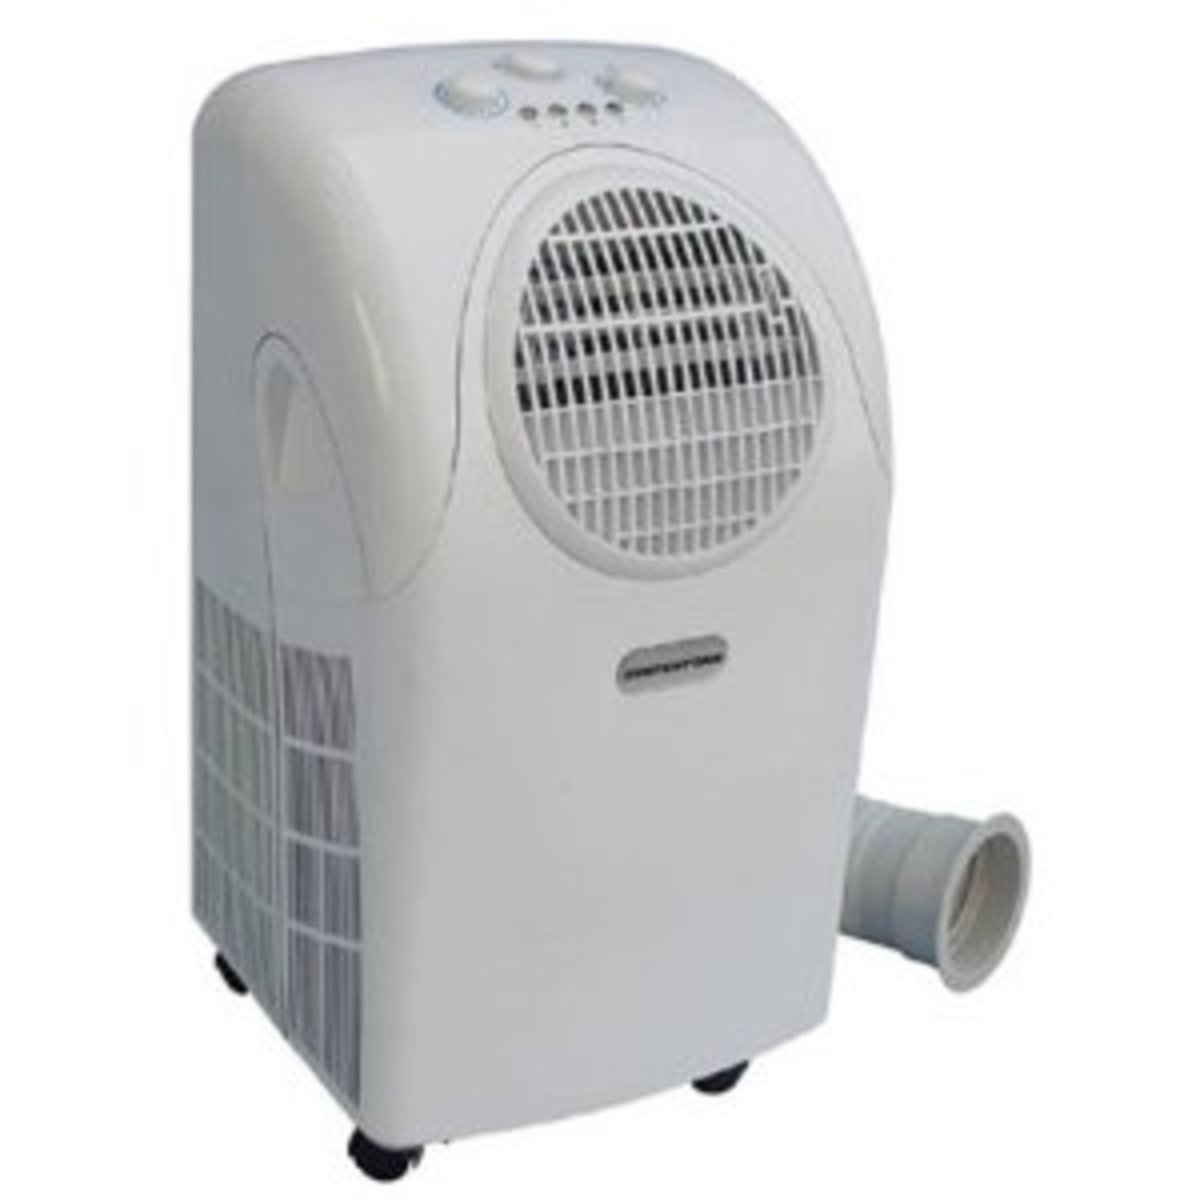 SPT Portable Air Conditioner, 7500 BTUs, WA-7500M